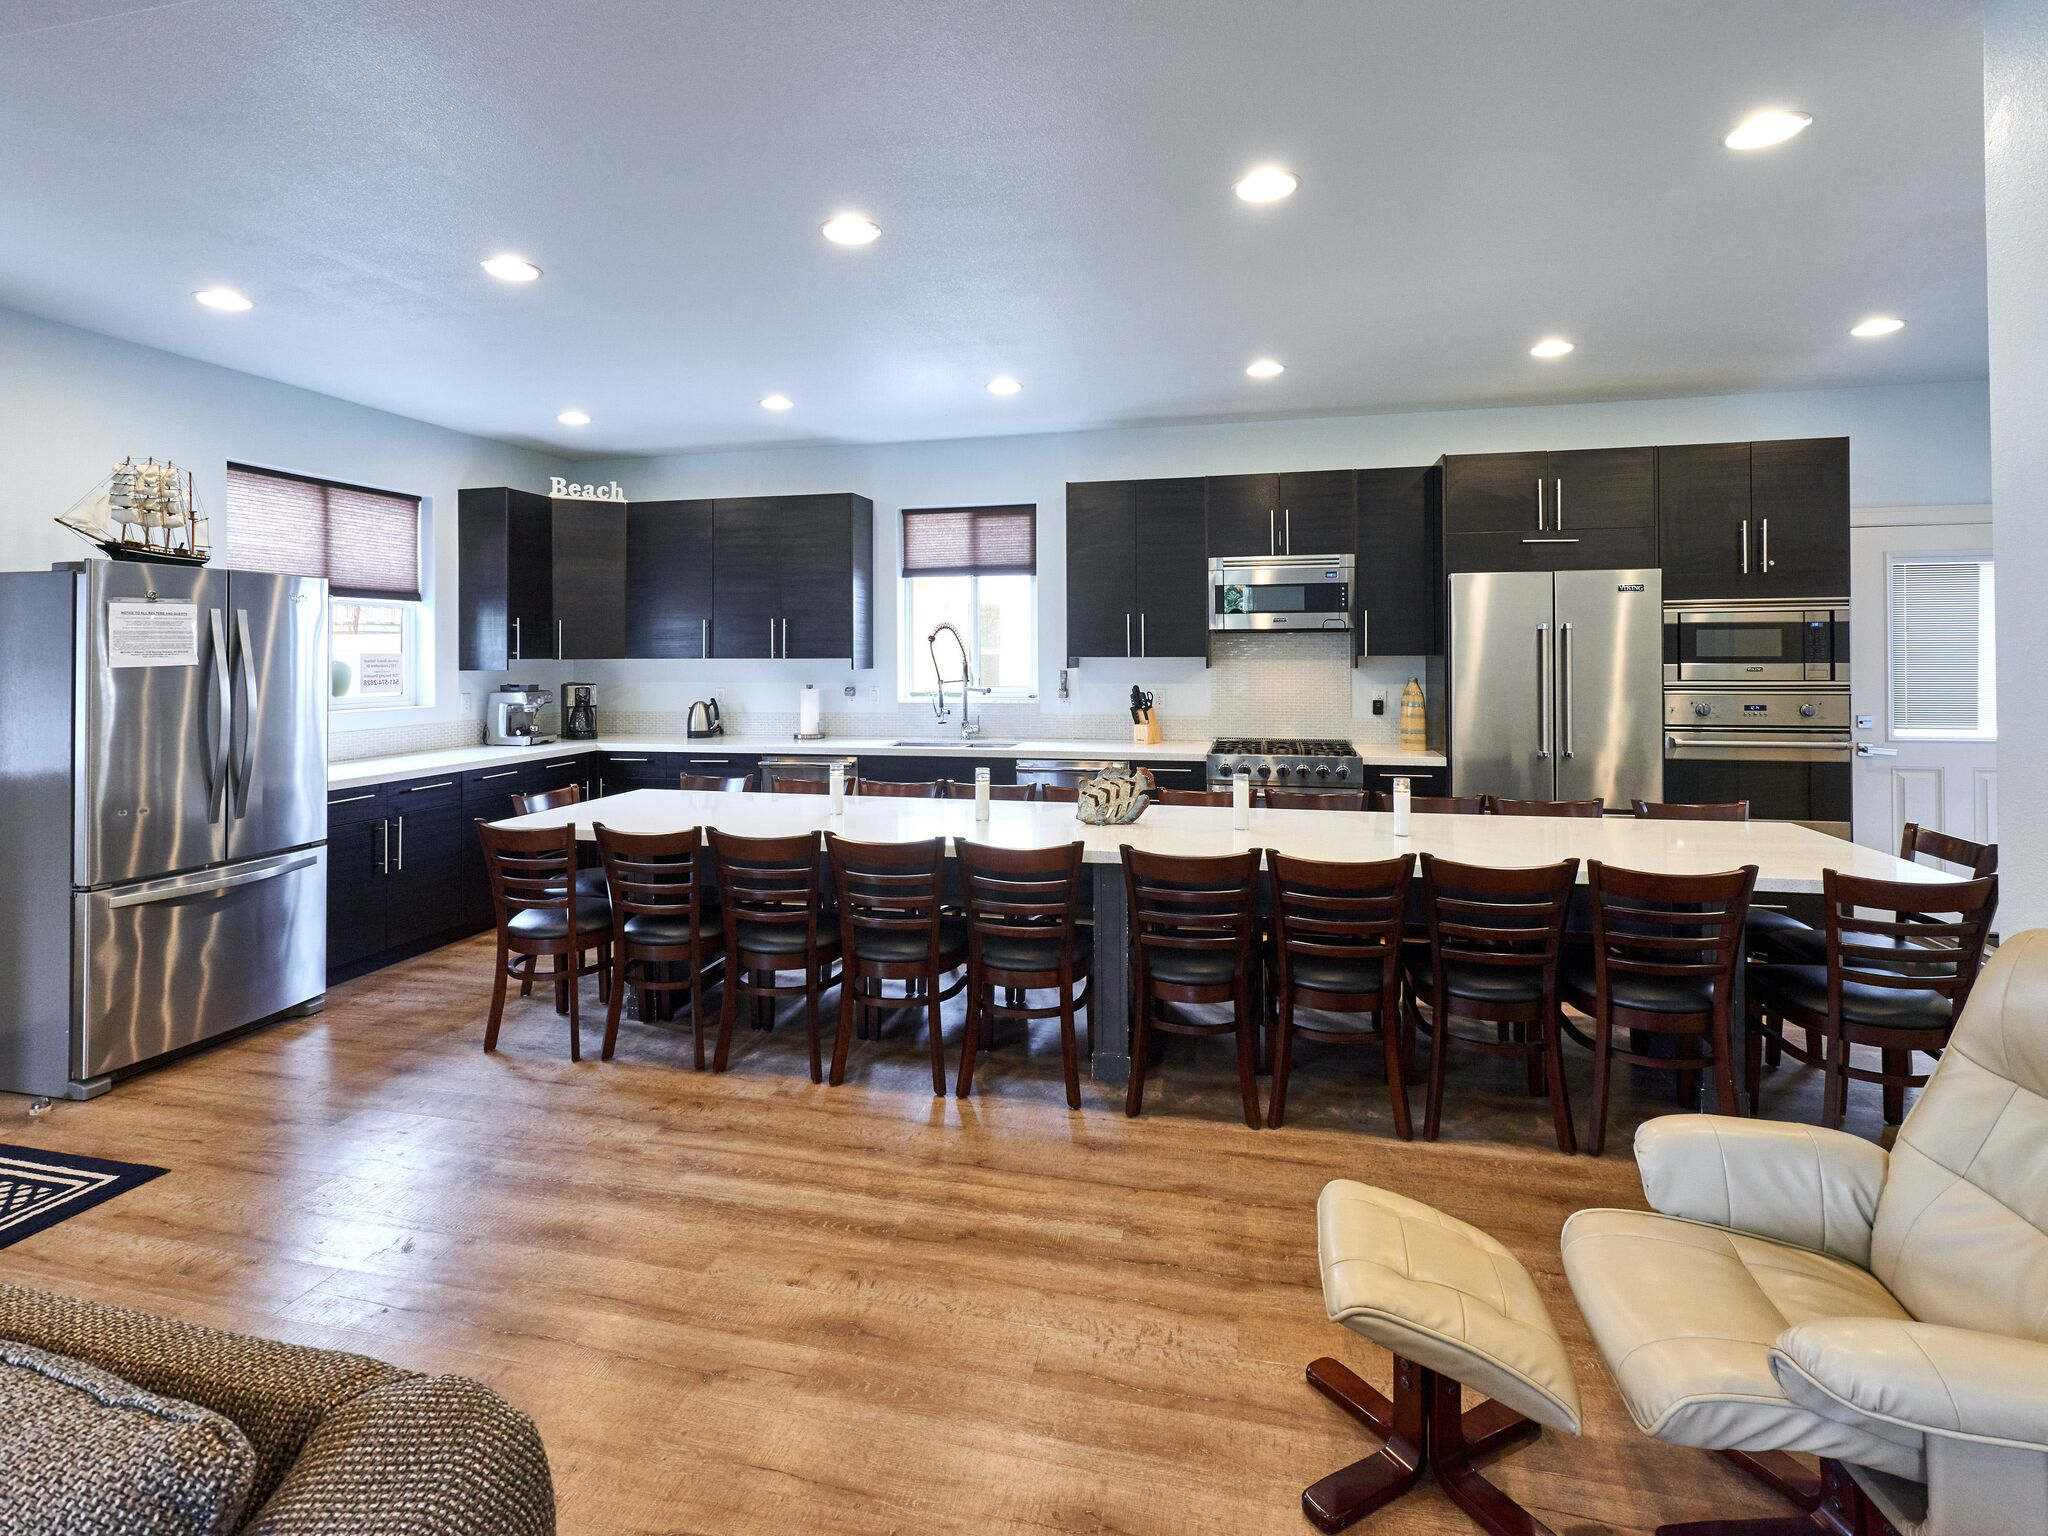 Vacation home kitchen and long dining table.